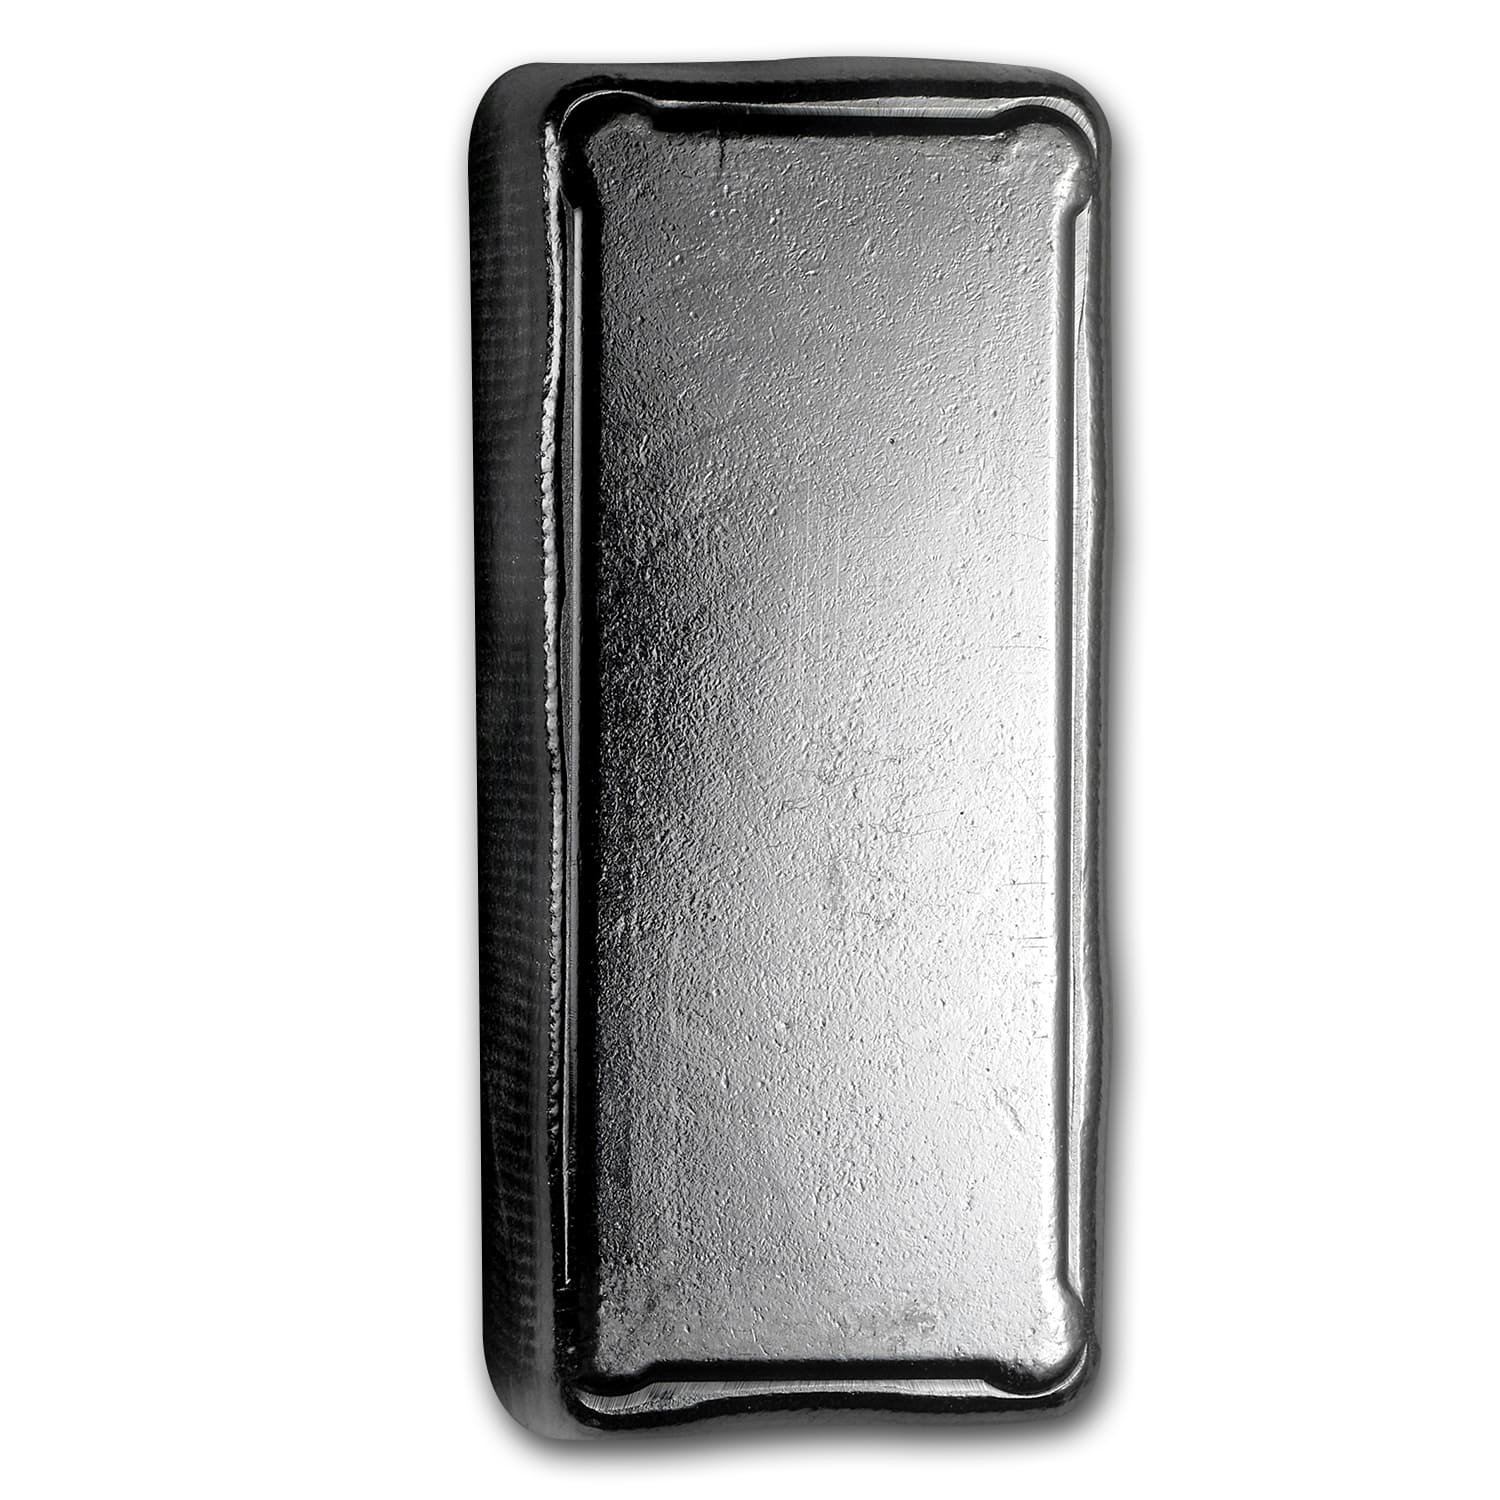 10 Oz Silver Long Cast Bar 5 Oz Silver Bars Apmex